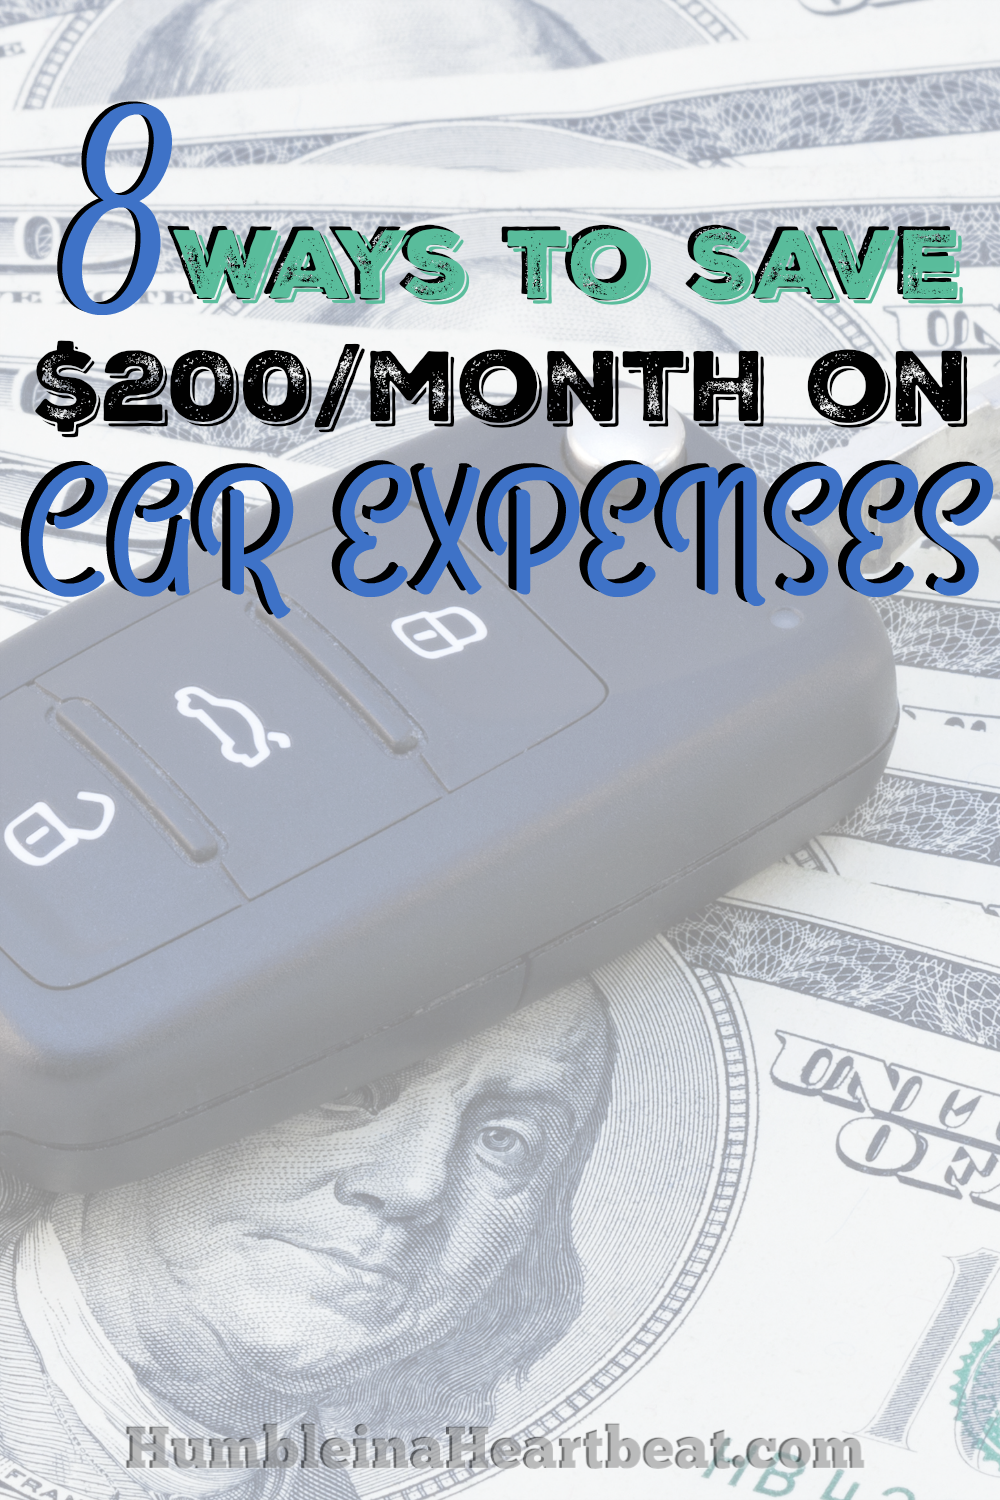 Auto expenses can get way out of hand if you're not careful. When you are conscious of all the ways you can save on your car, you will find that it's not so hard after all!